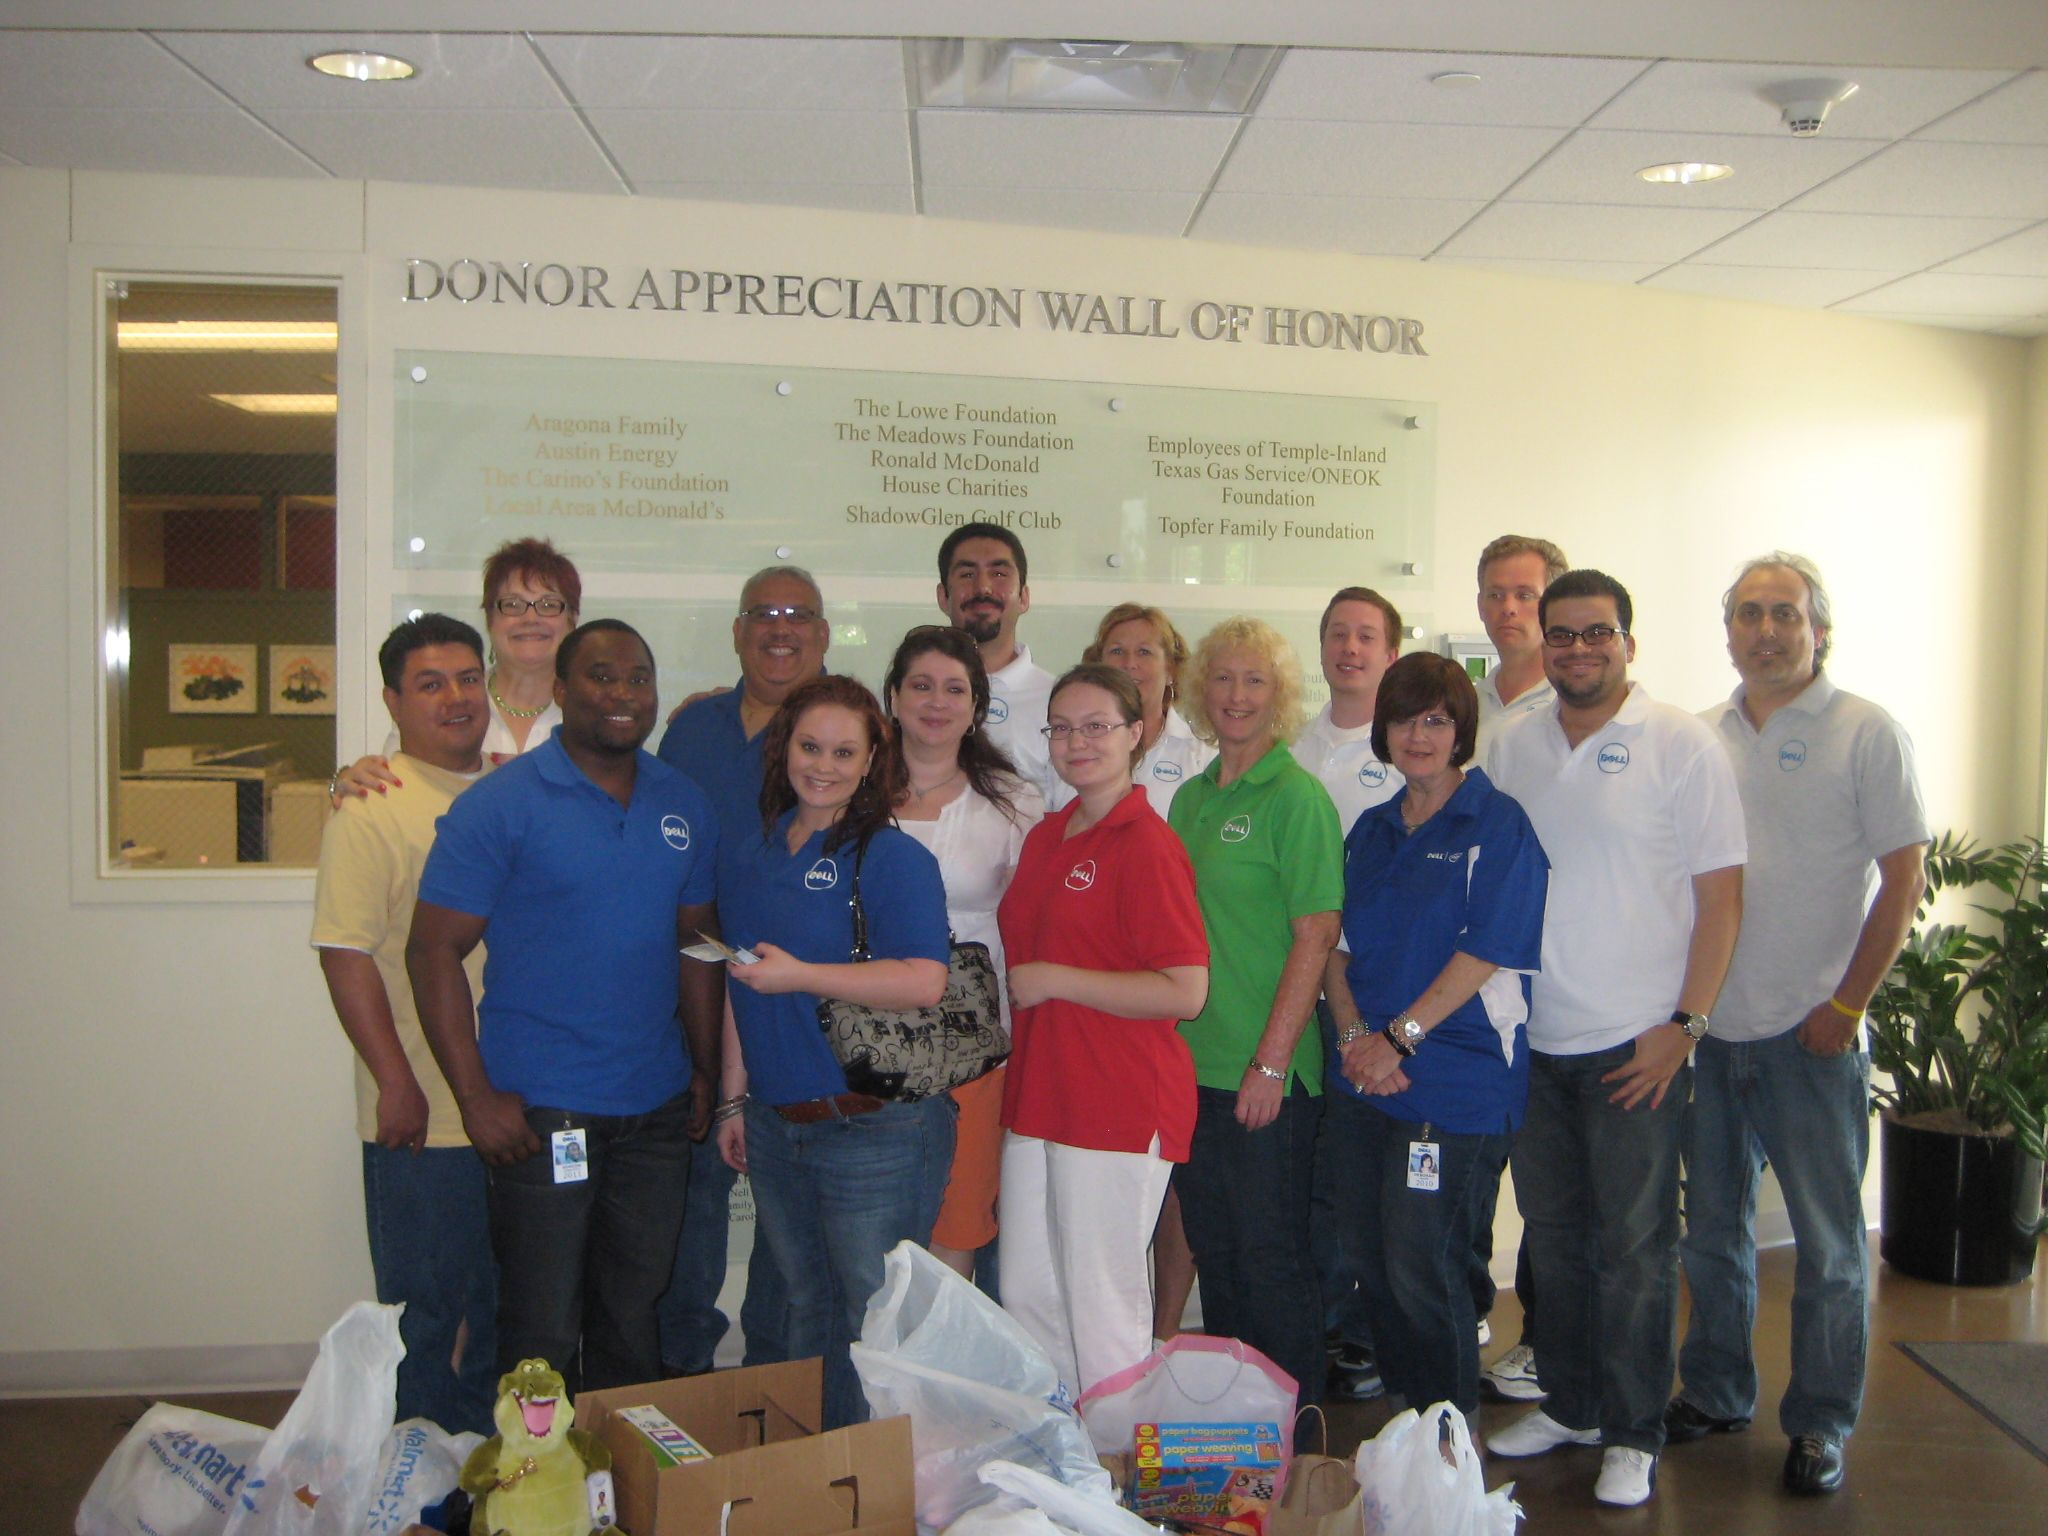 This Dell volunteer group brought items from out Wish List.